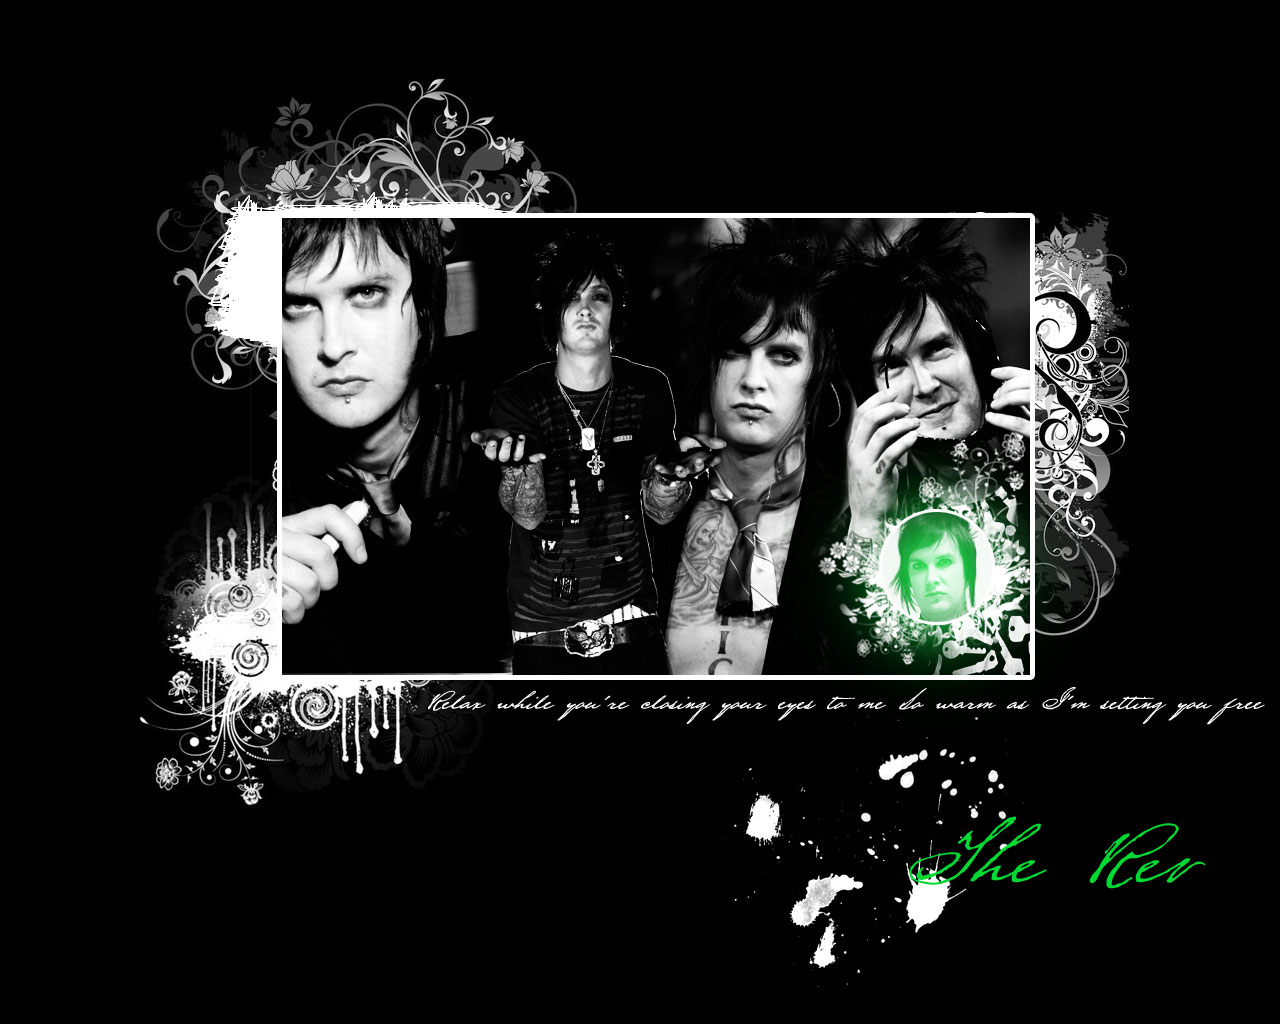 The Rev Drumming Wallpaper The Rev Wallpaper by